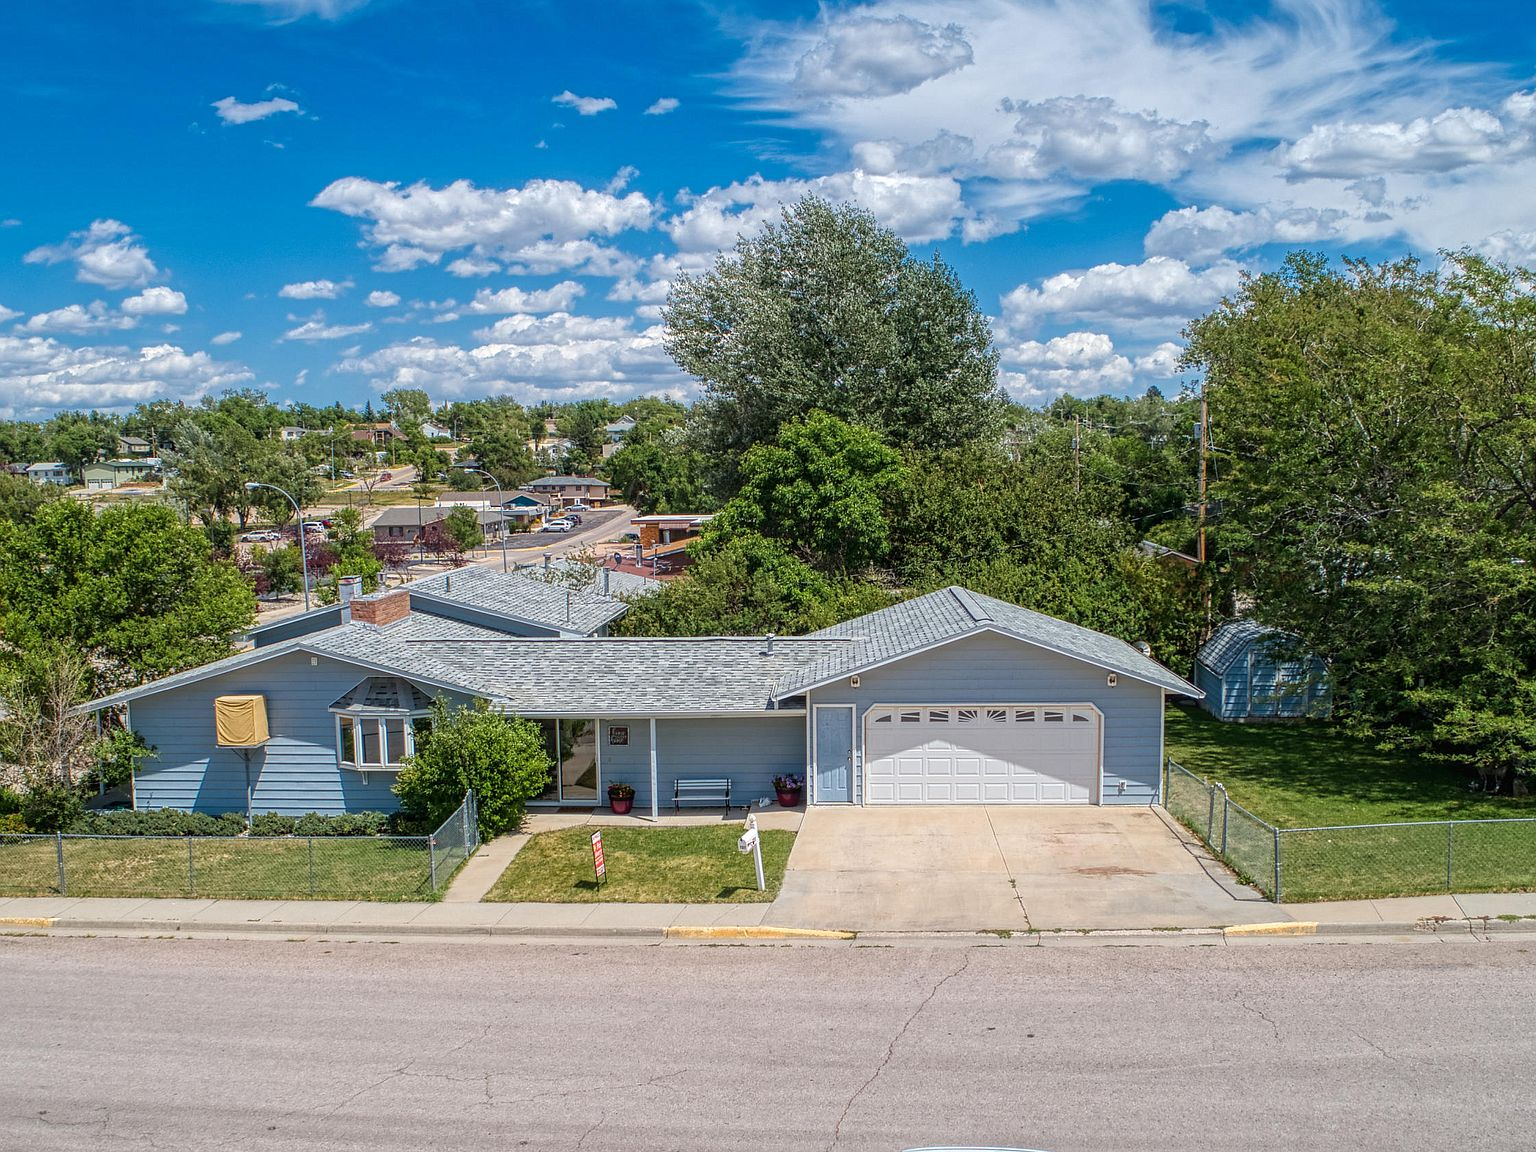 721 W 8th St Gillette Wy 82716 Zillow